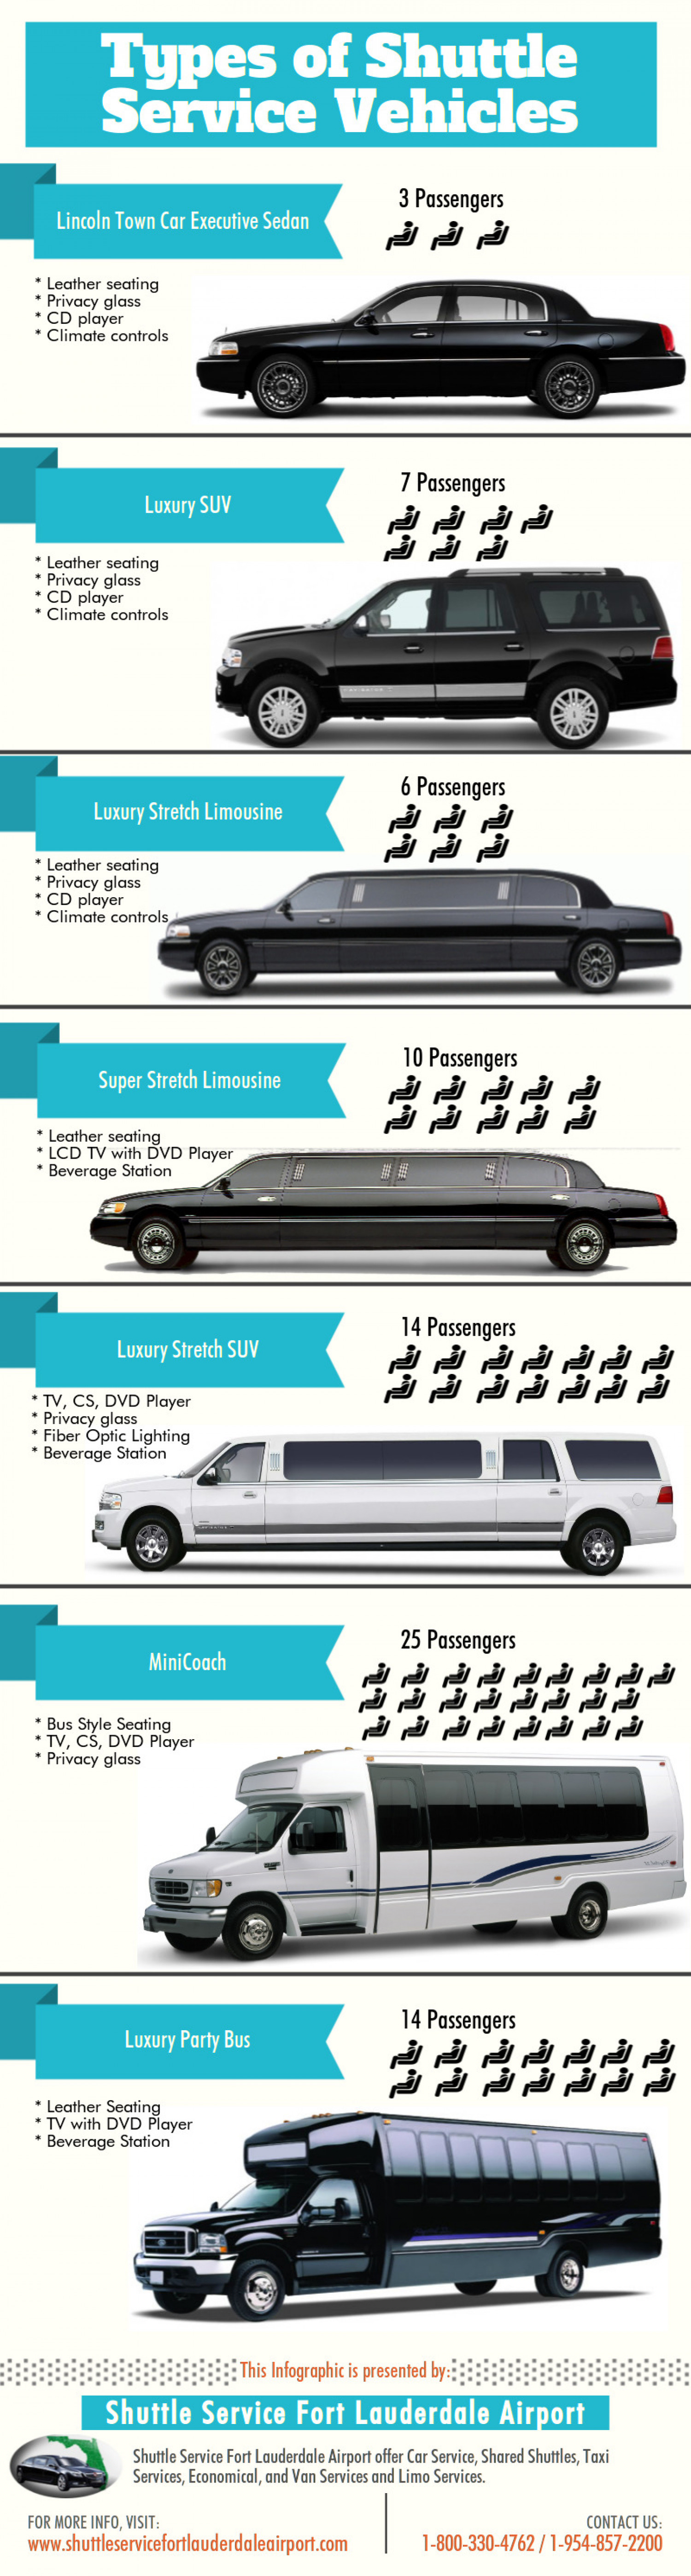 Types of Shuttle Service Vehicles Infographic